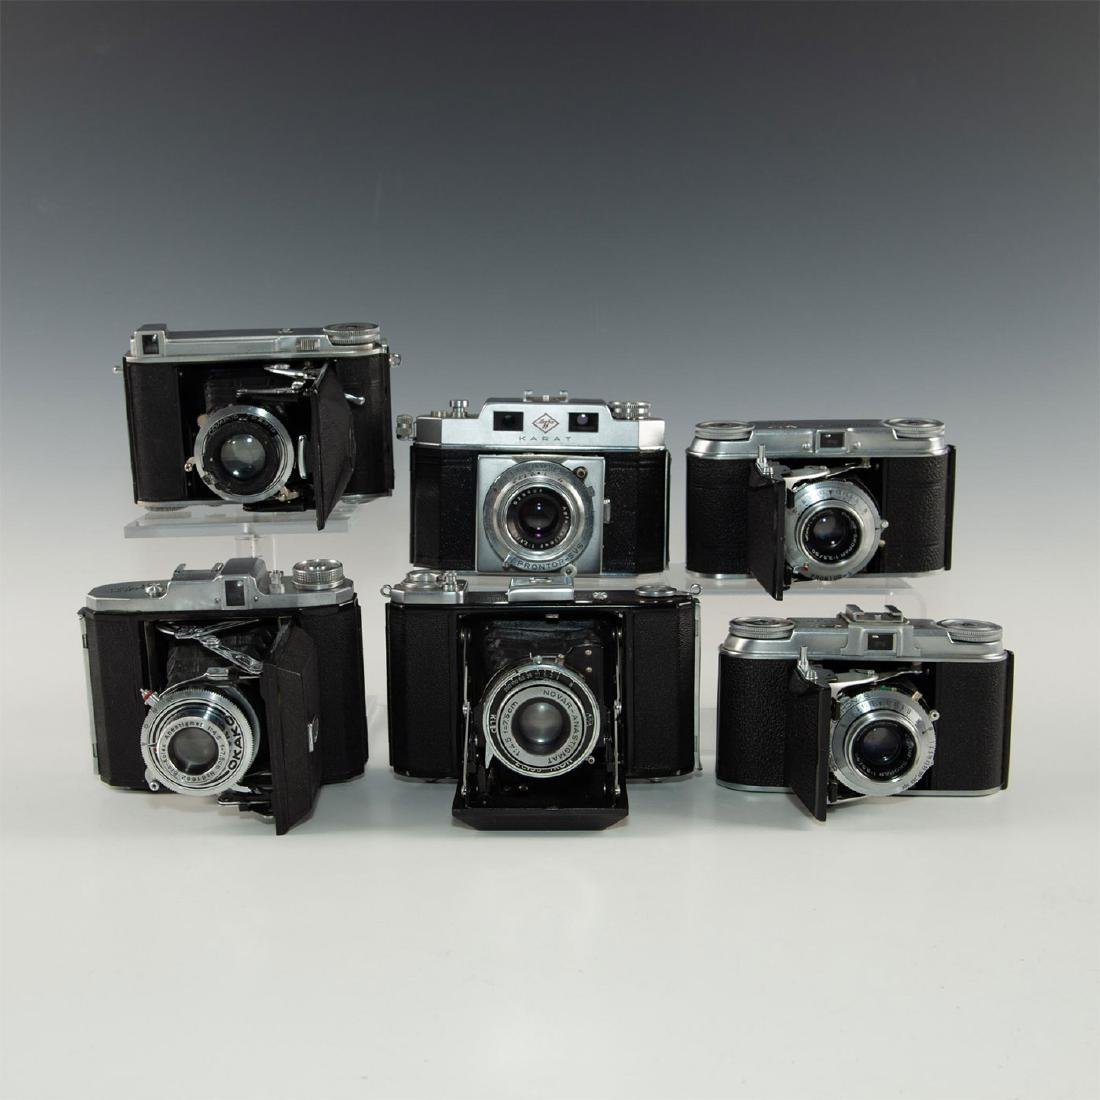 GROUP OF 6 MID 20TH CENTURY ROLL FILM CAMERAS